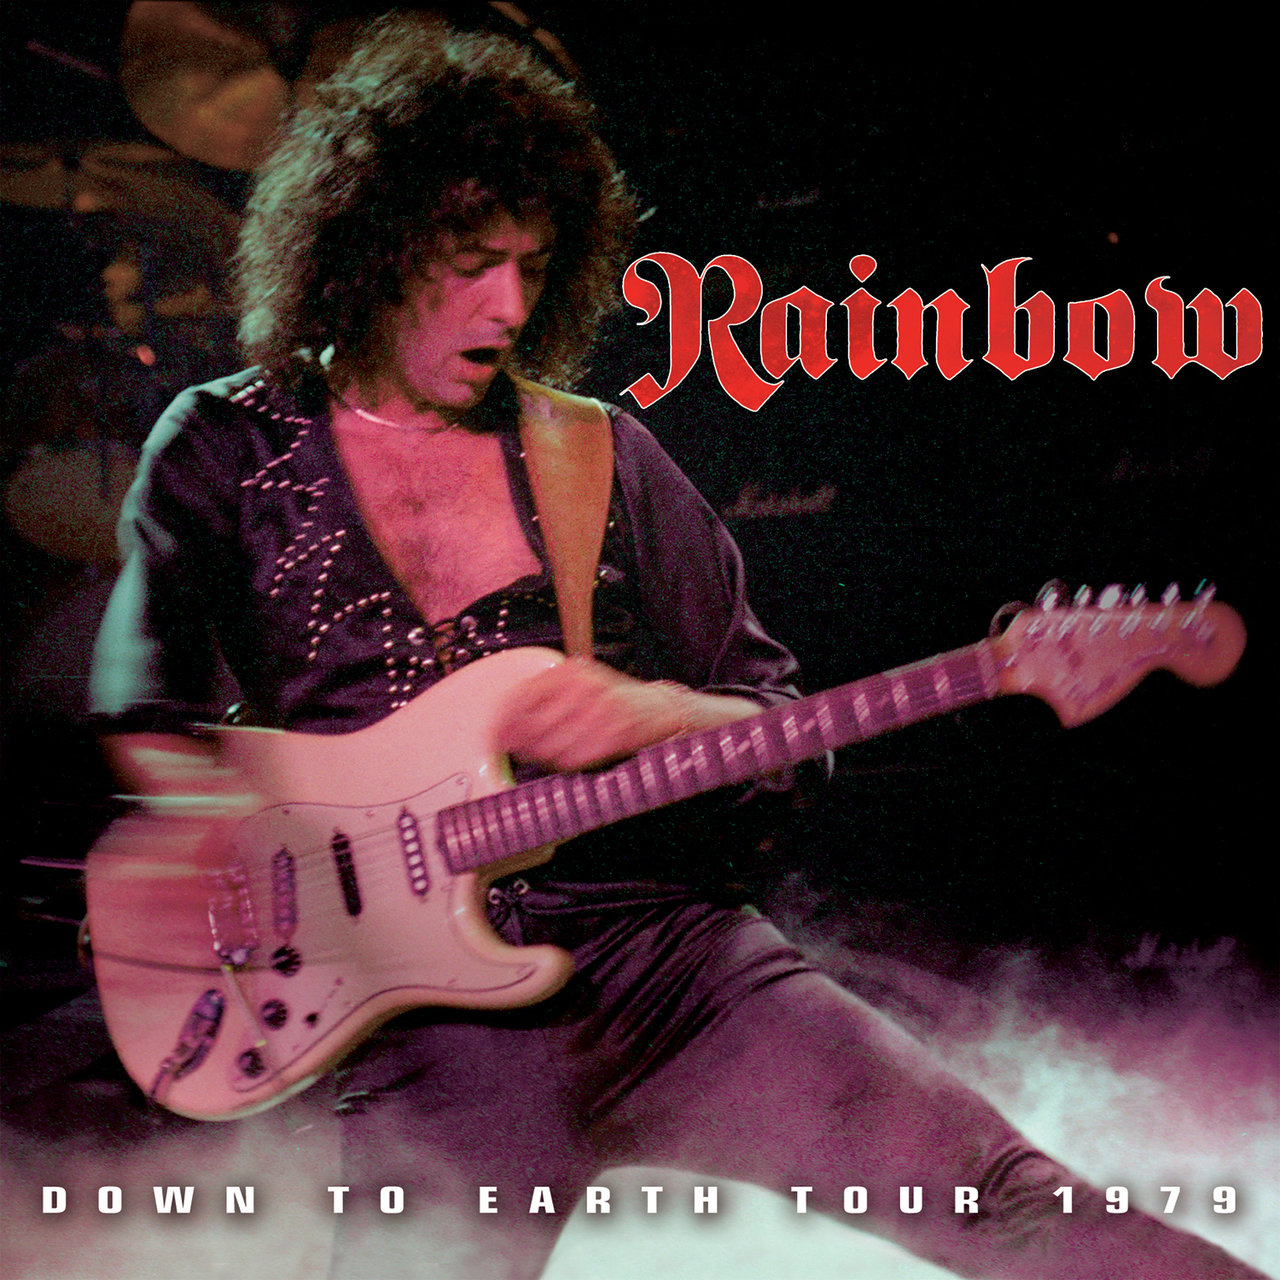 Down to Earth Tour 1979 (Live)